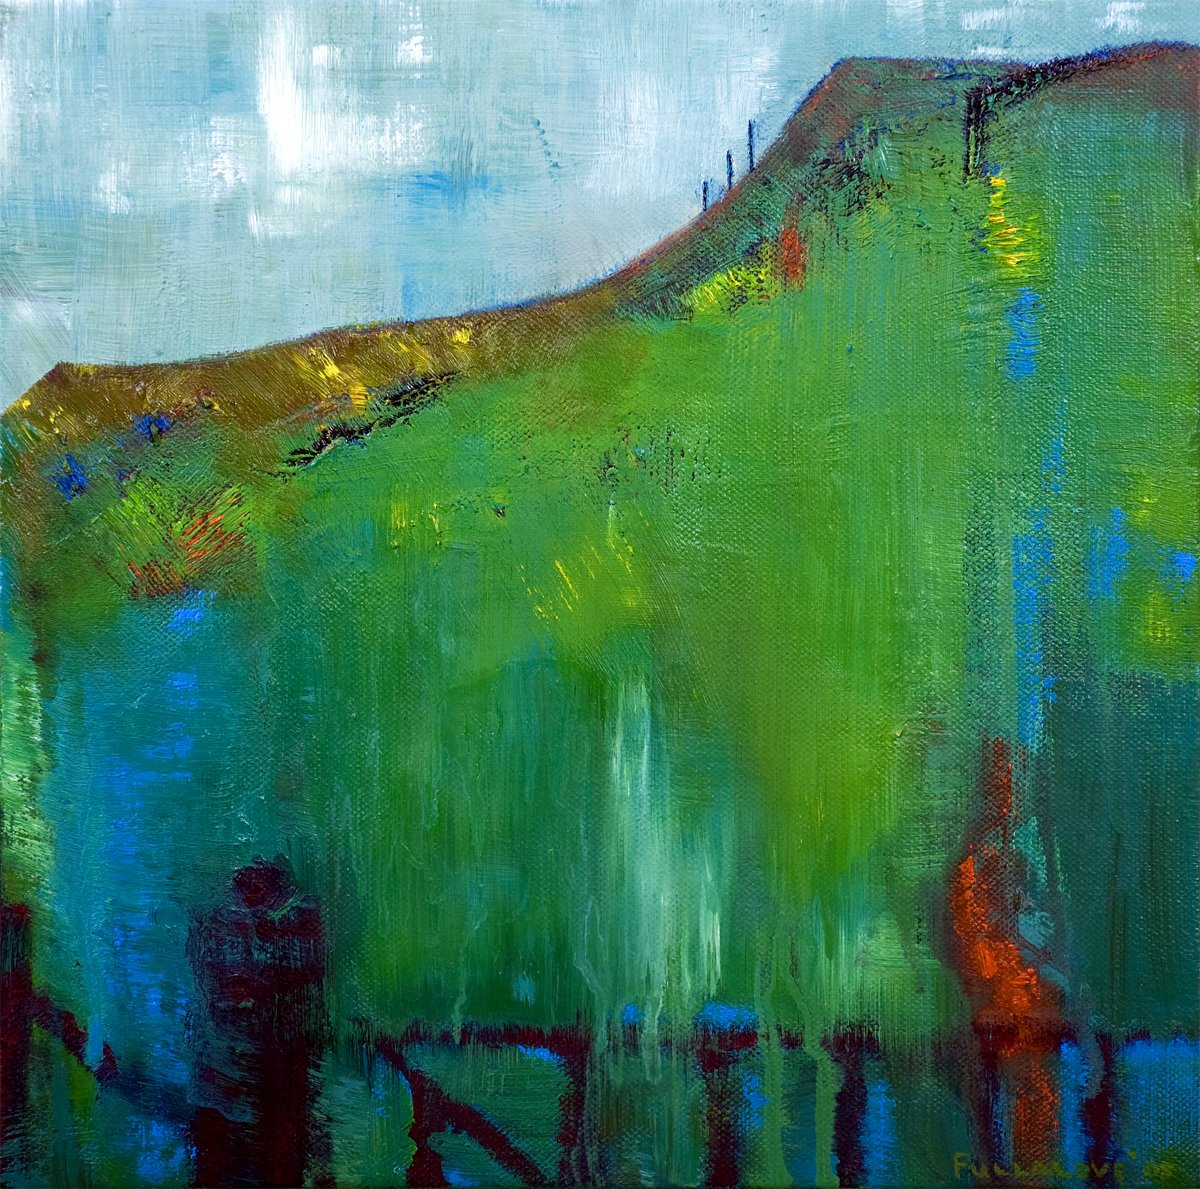 View From the Haworth - Oil on Canvas 30cm x 30cm